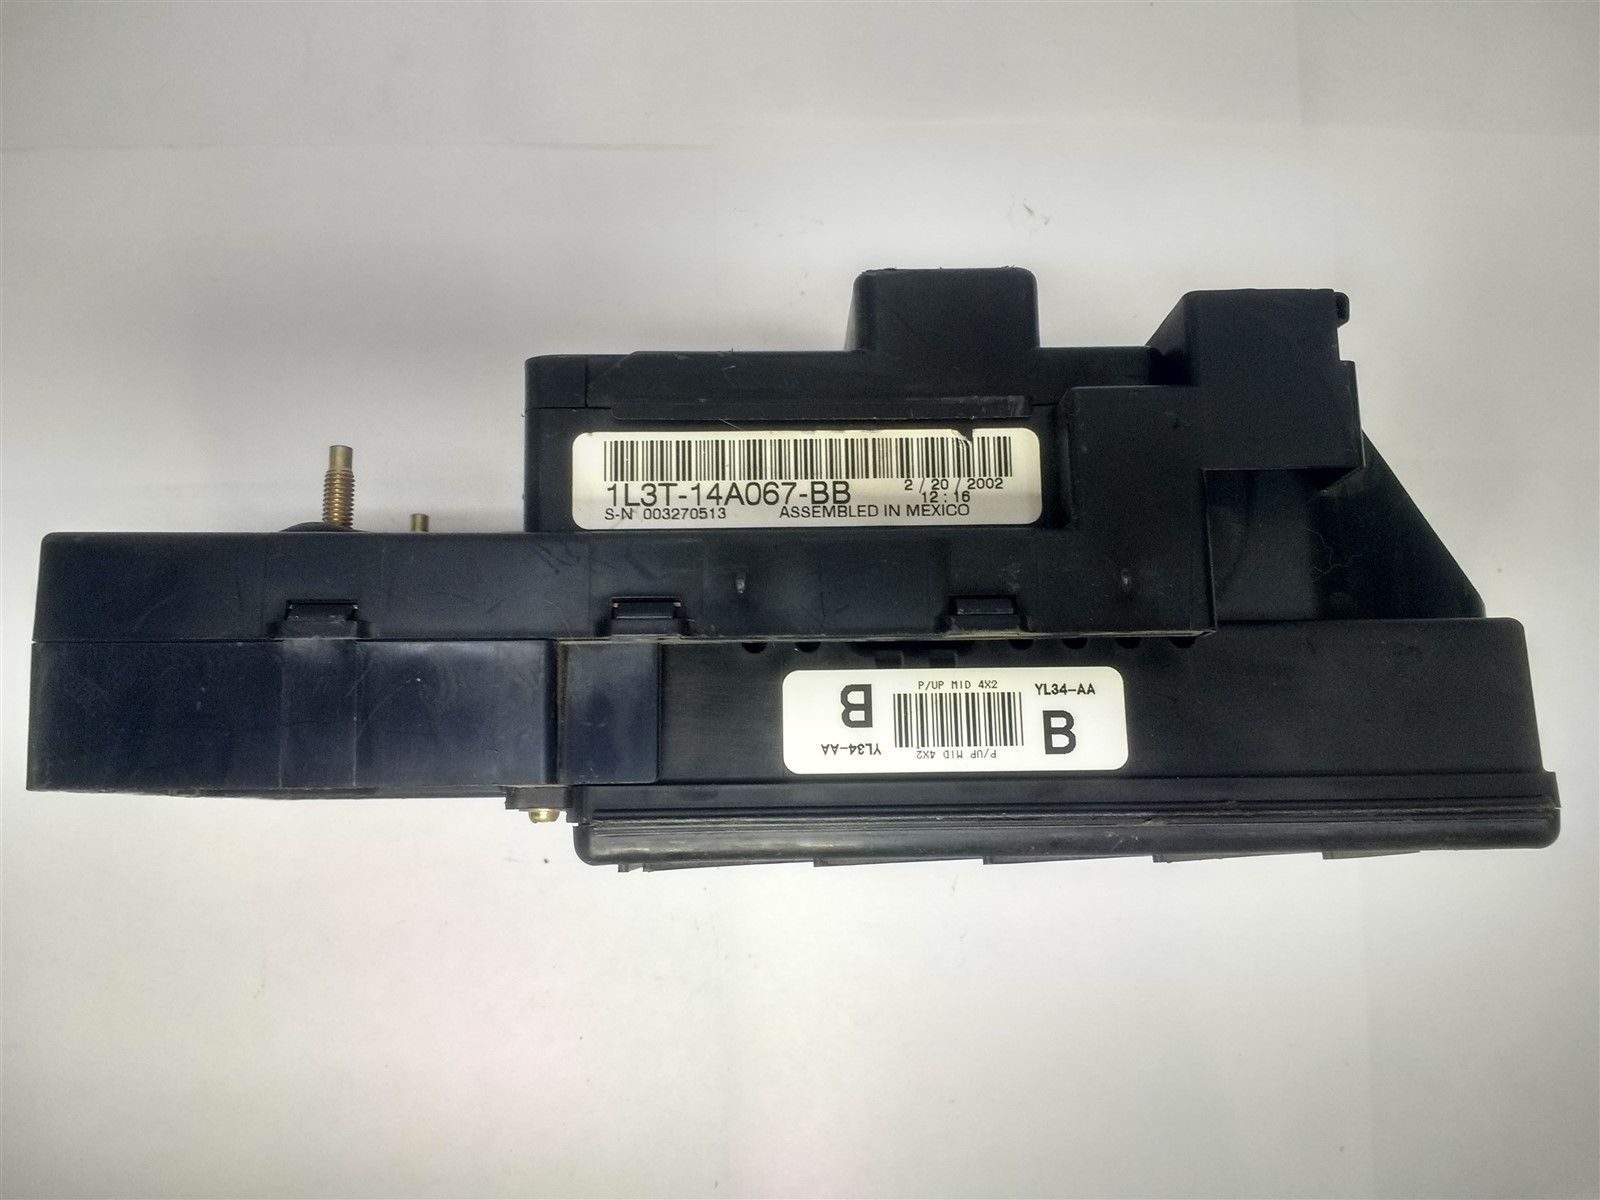 hight resolution of 2001 ford f150 interior dash fuse box junction relay box with gem 1l3t 14a067